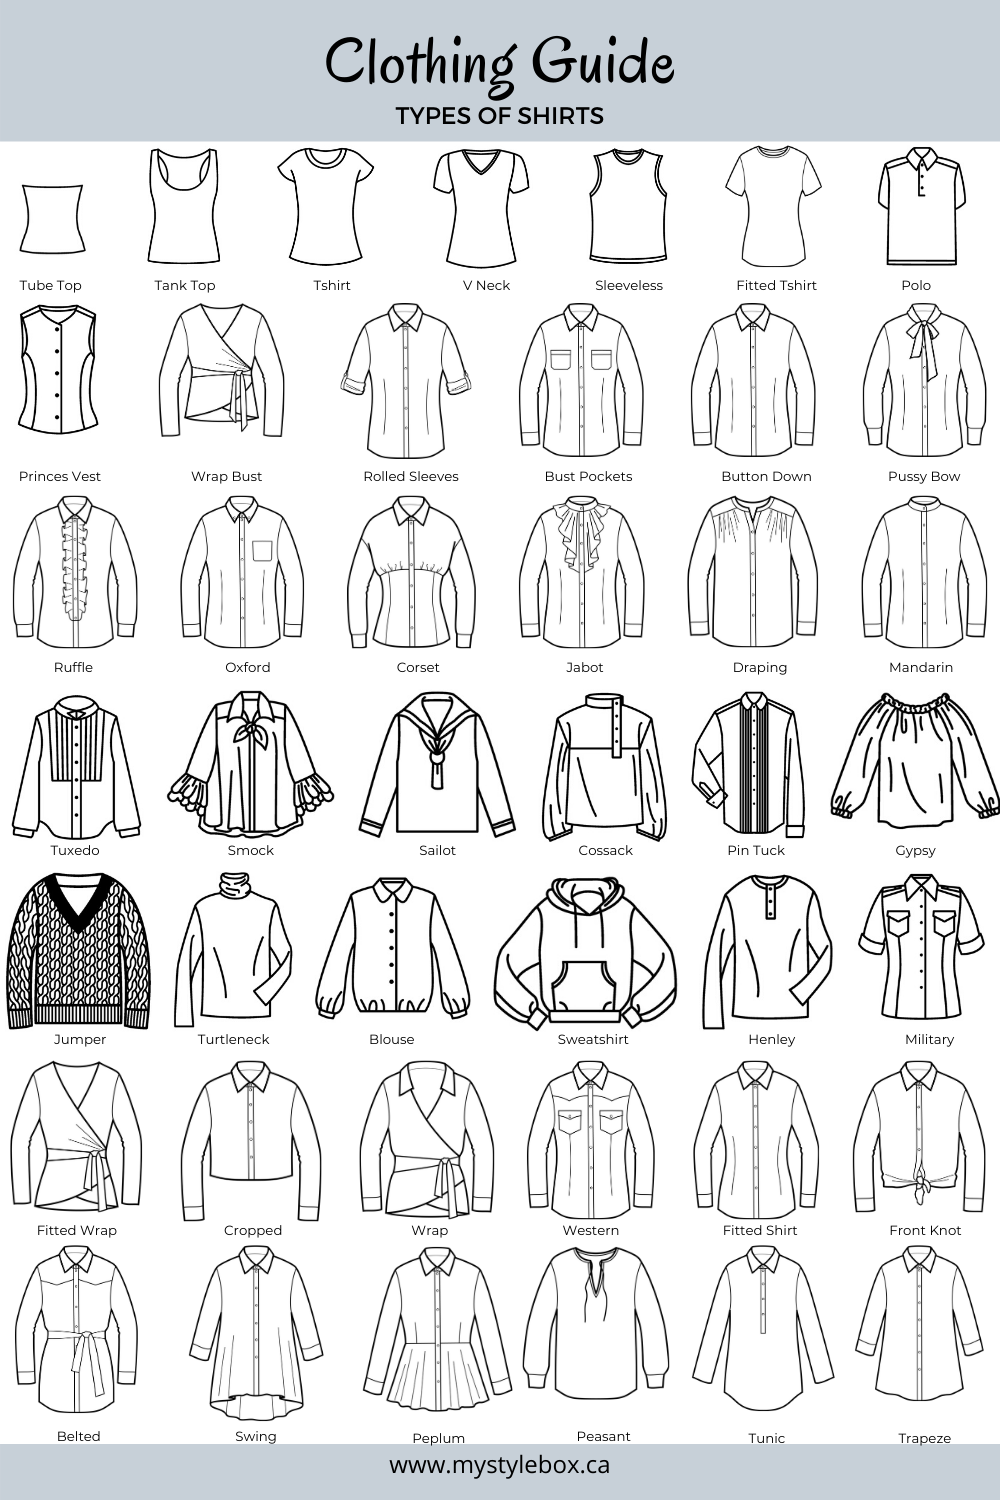 Clothing Guide - Types of Shirts   Fashion vocabulary, Fashion design  sketches, Fashion illustrations techniques